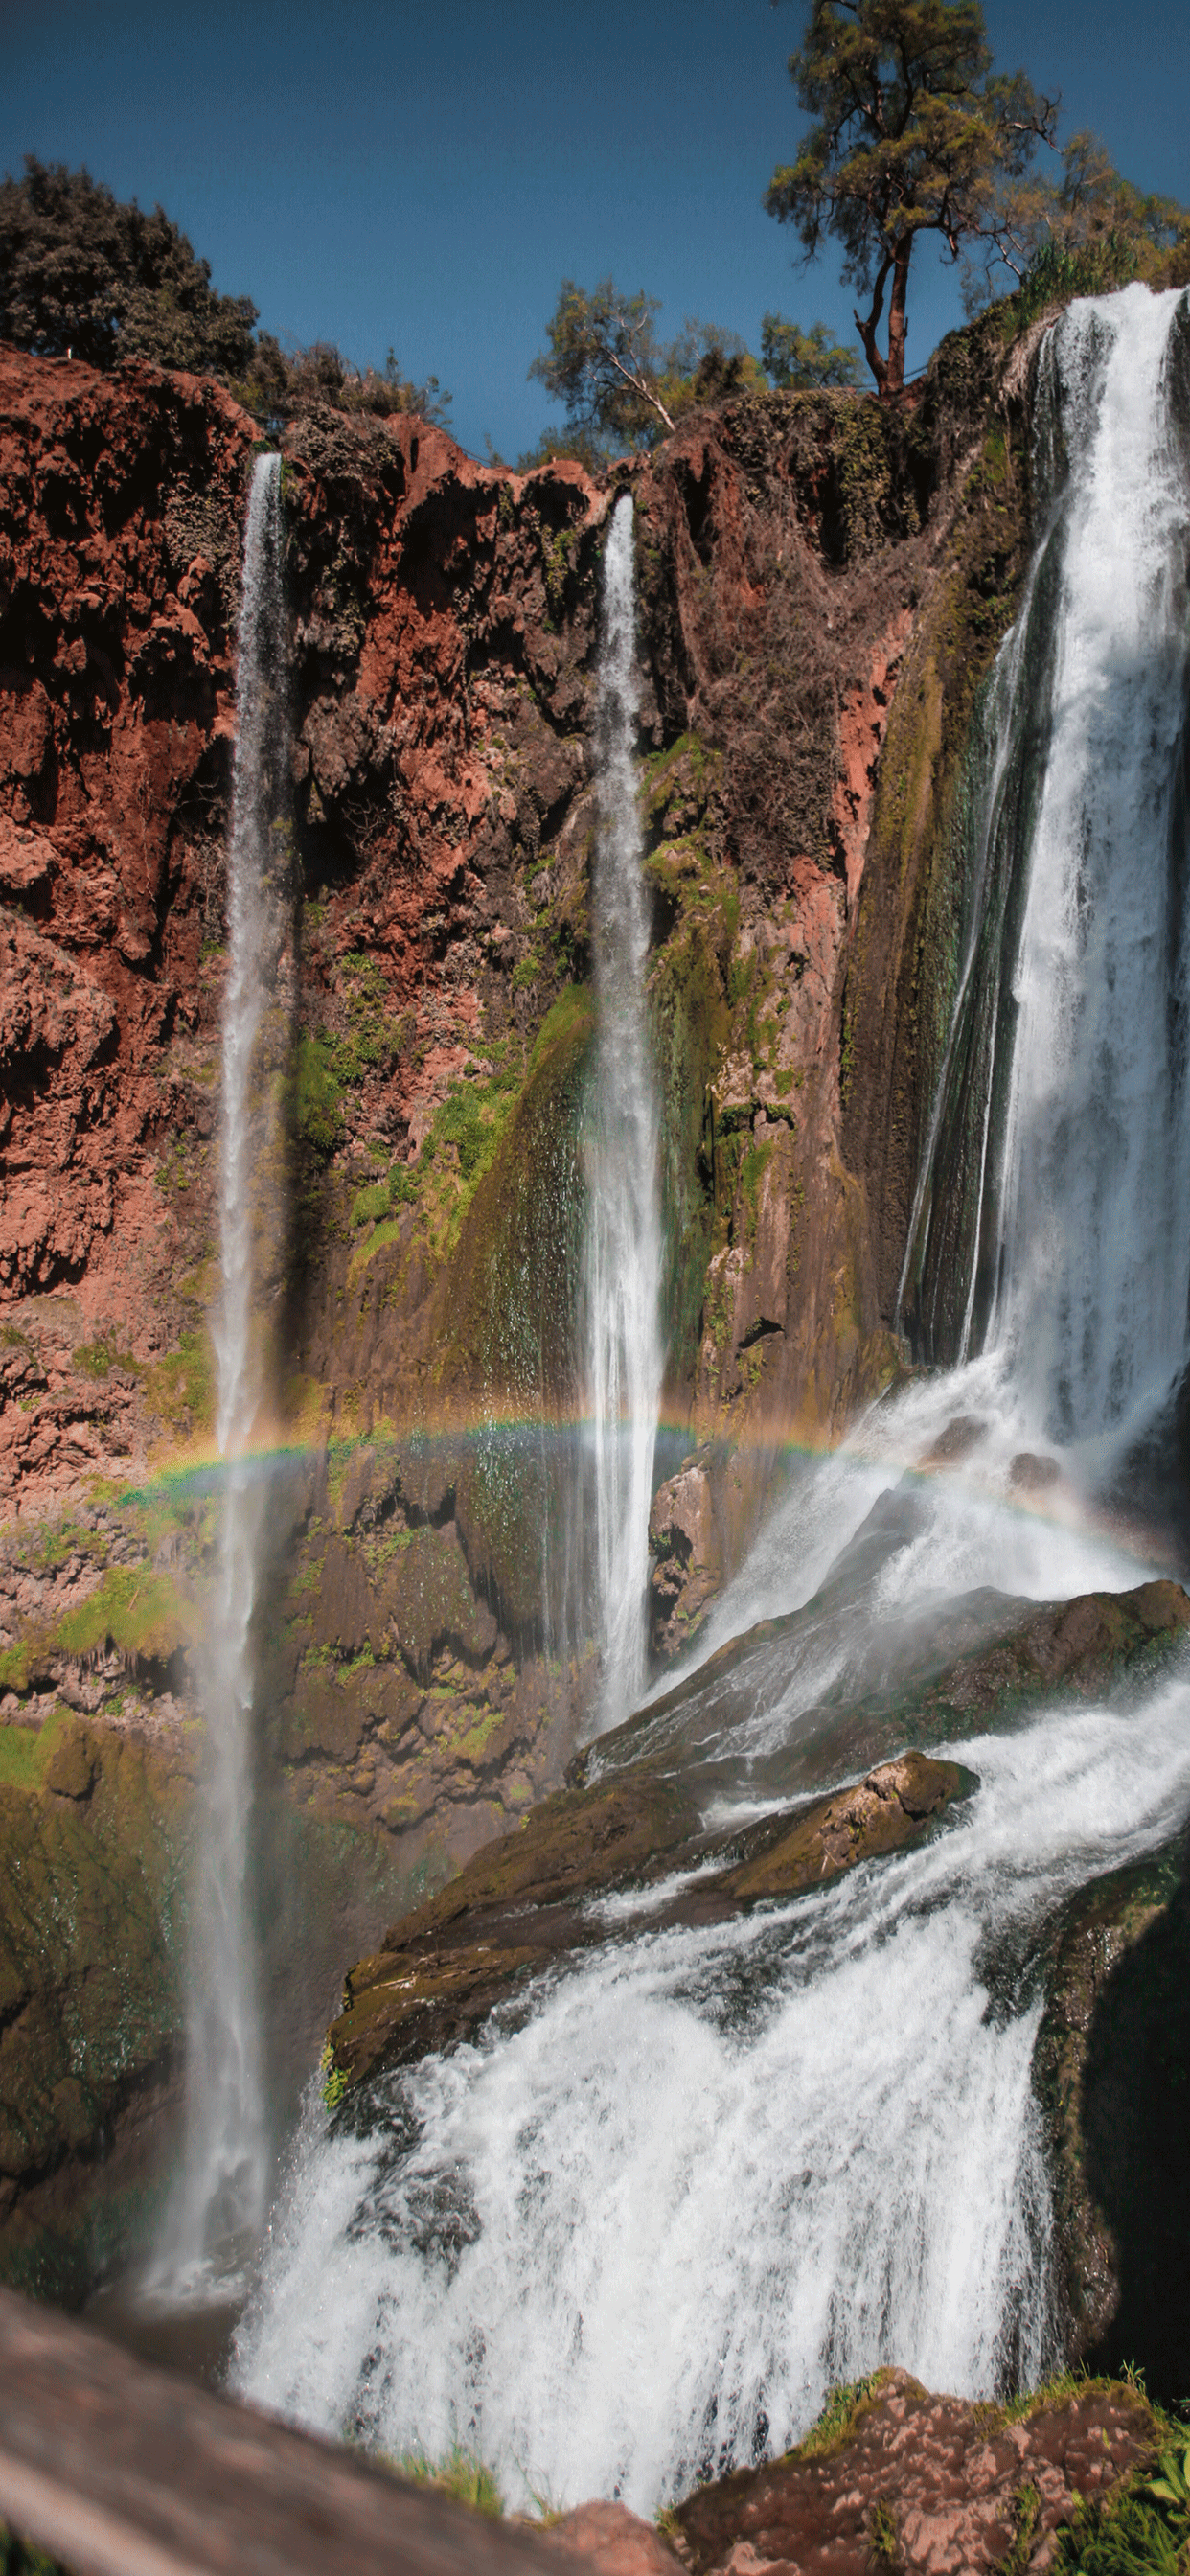 iPhone wallpapers rainbow waterfall Fonds d'écran iPhone du 24/05/2019